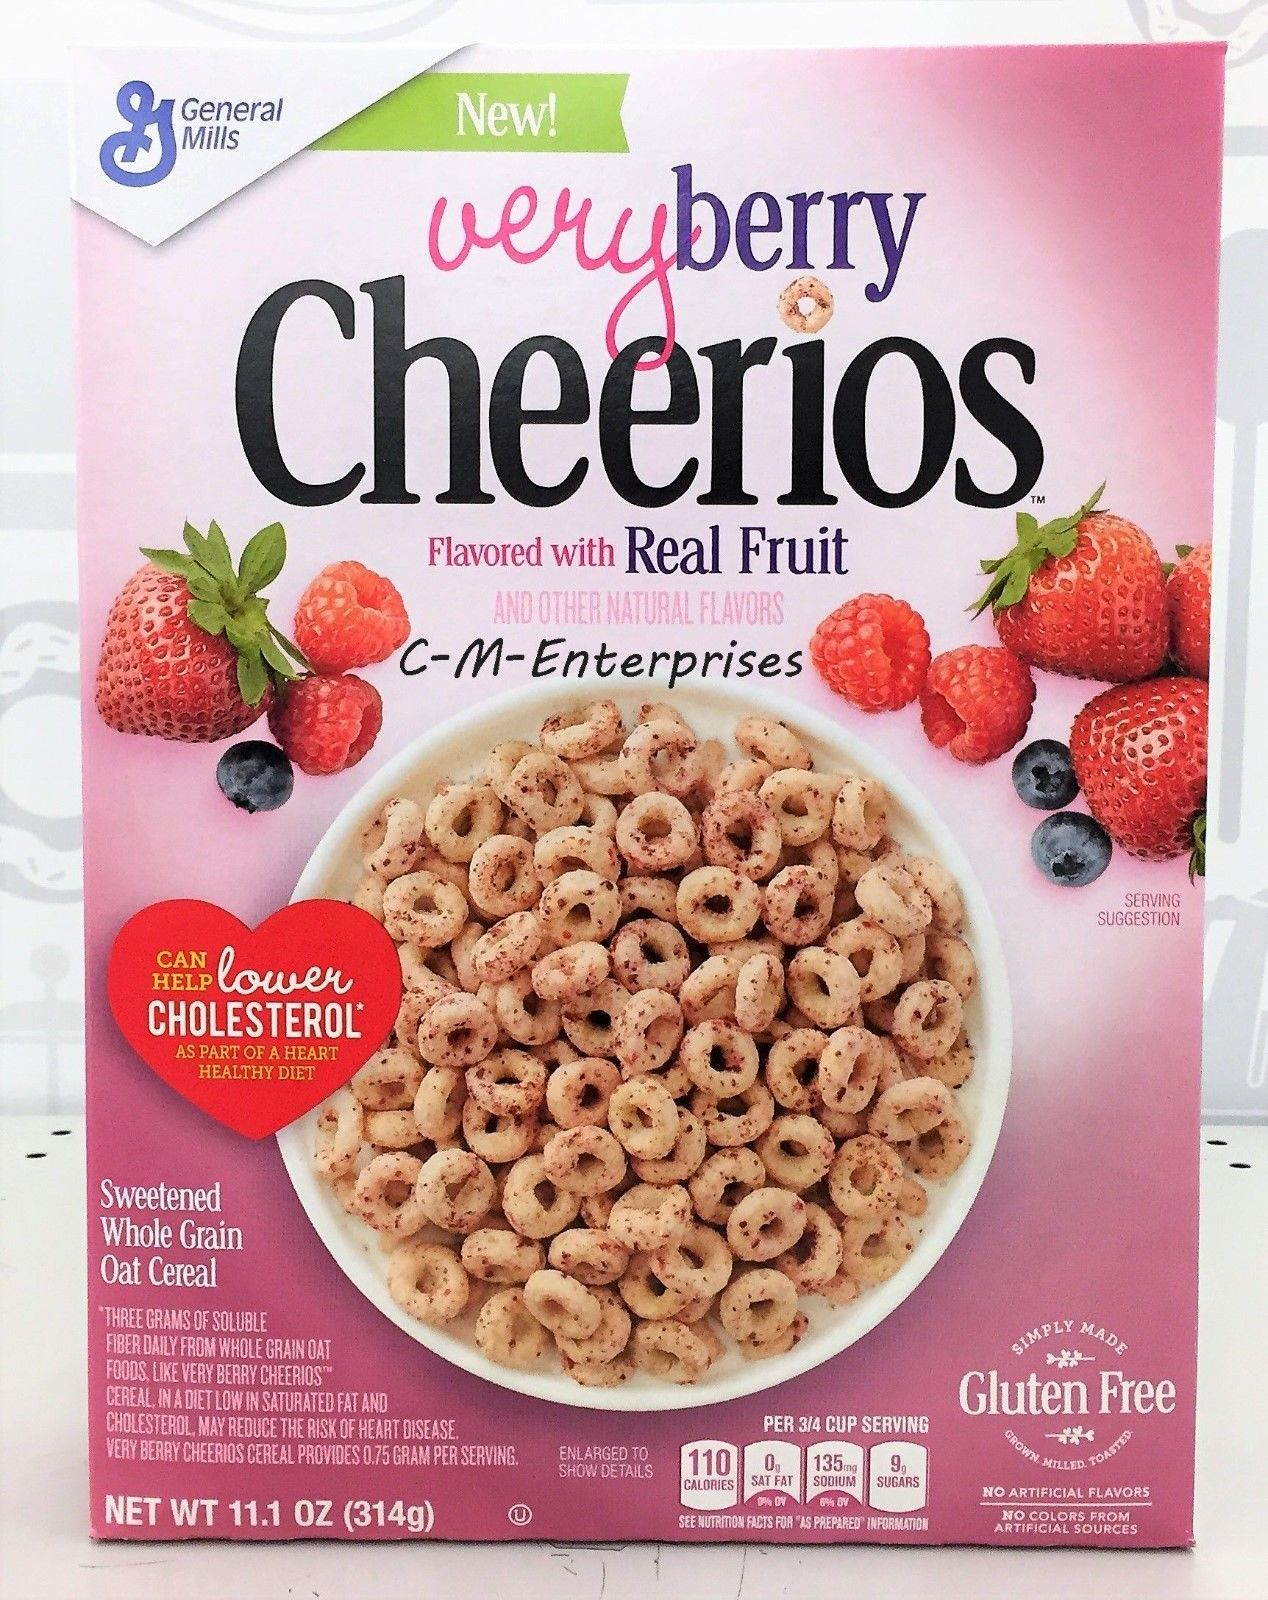 $6.17 - Cheerios Very Berry Sweetened Whole Grain Oat Cereal 11.1 Oz General Mills #ebay